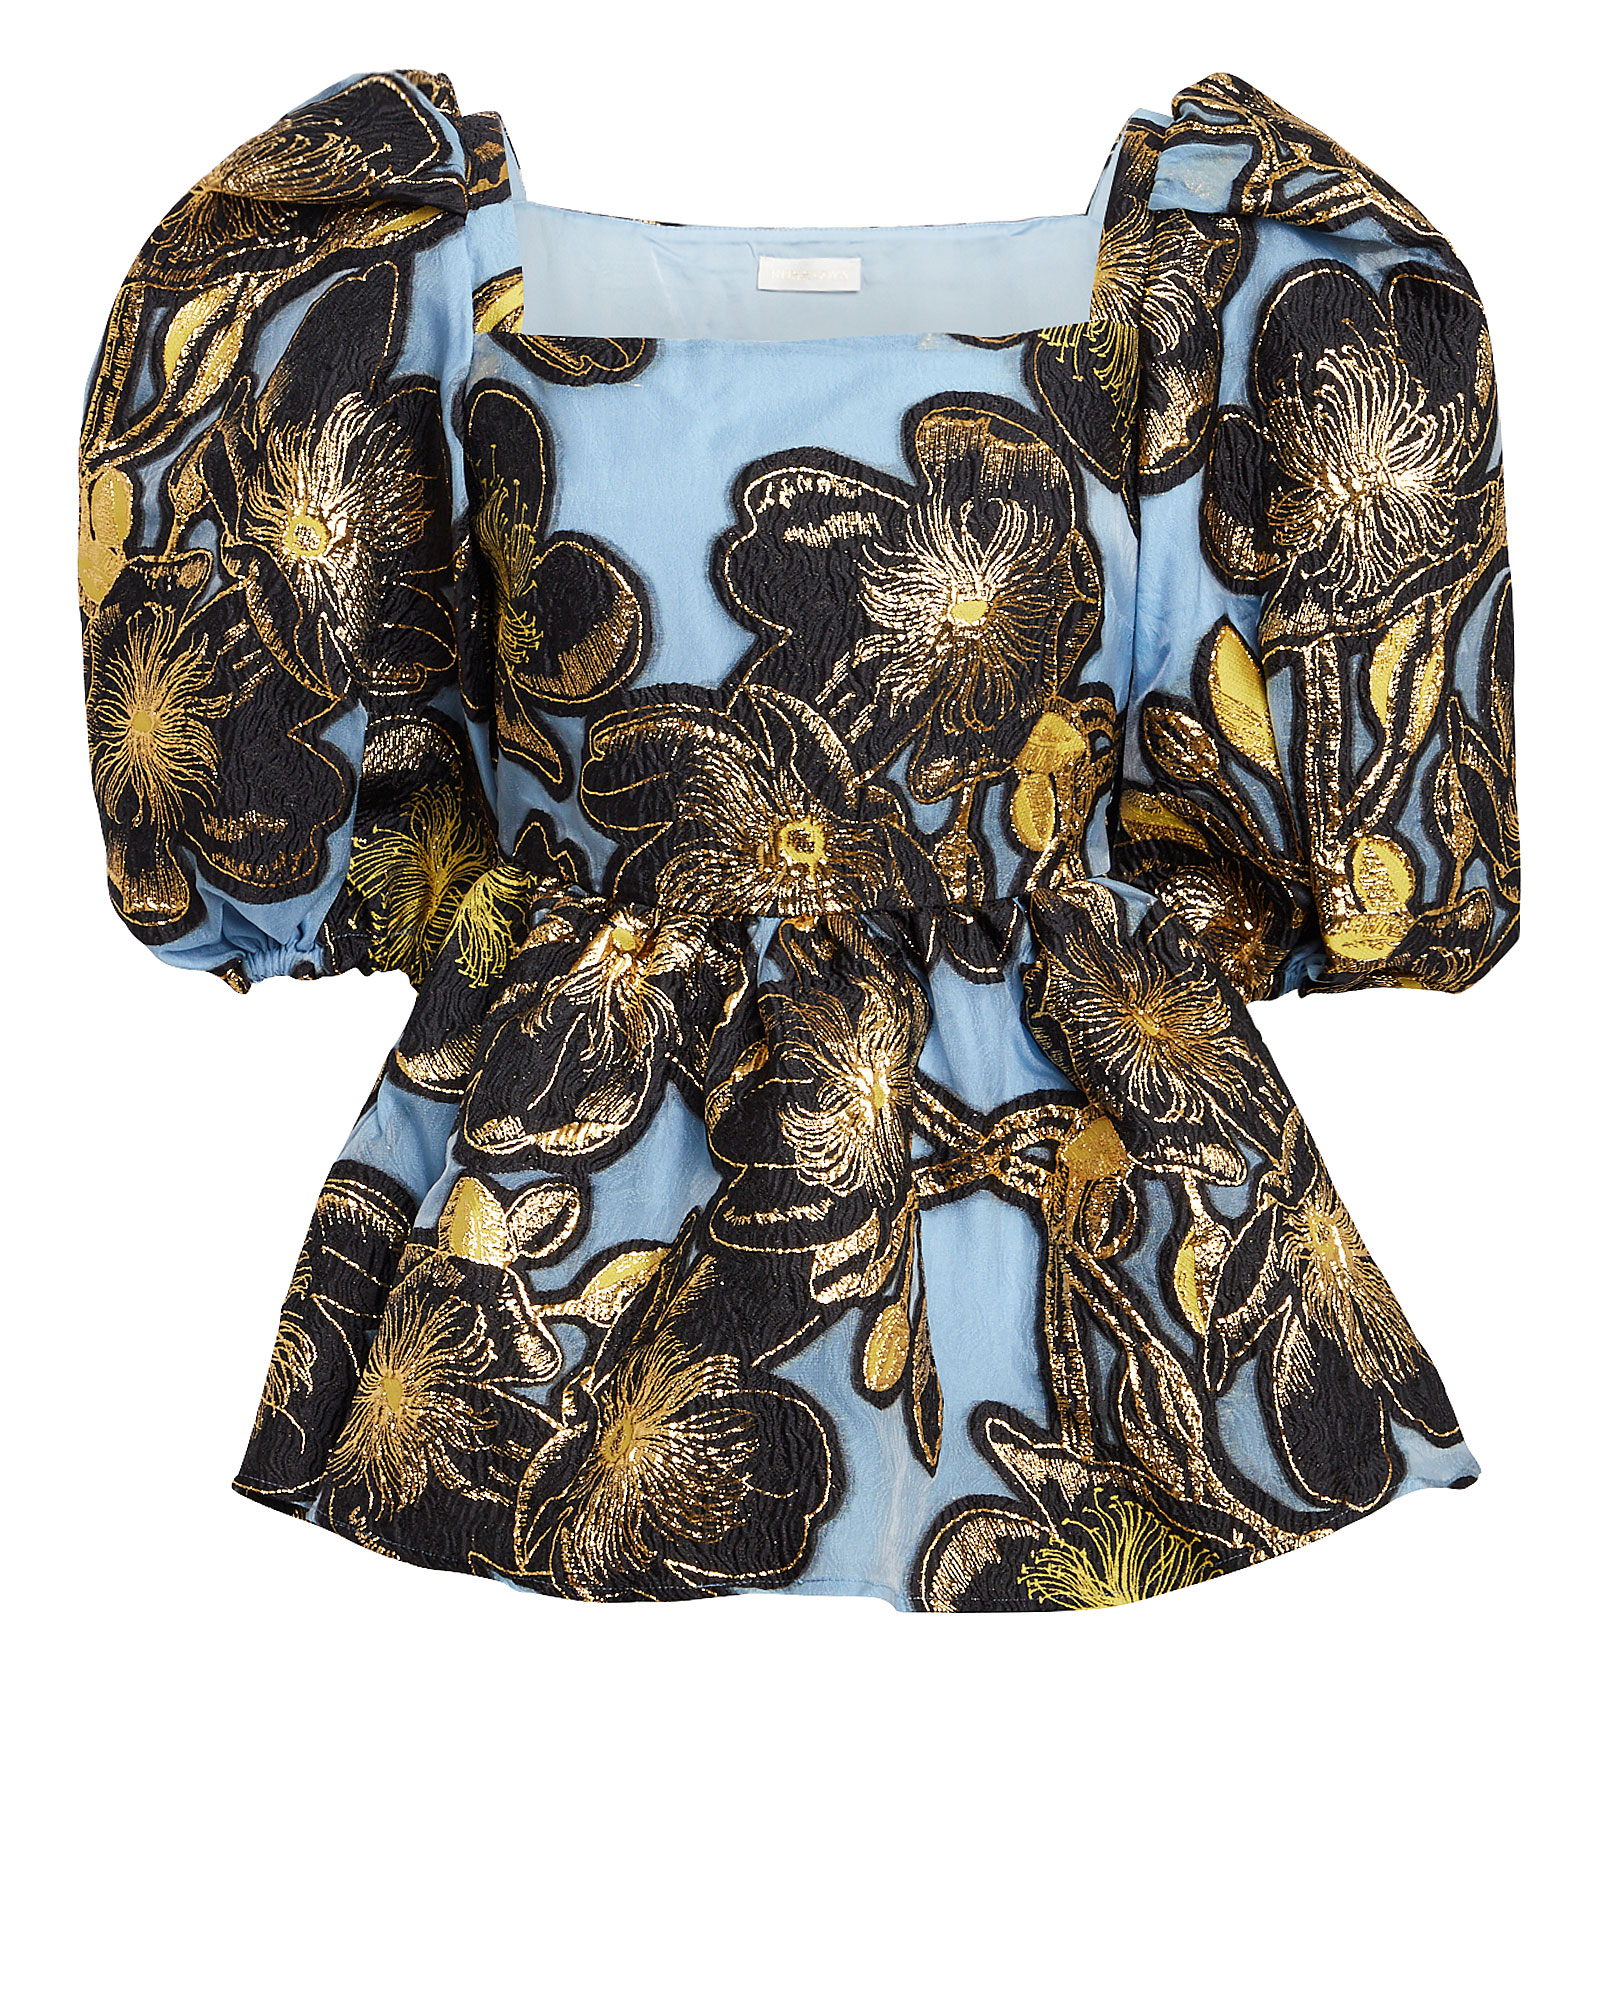 Stine Goya Irene Square-neck Floral Embroidered Top In Gold Floral